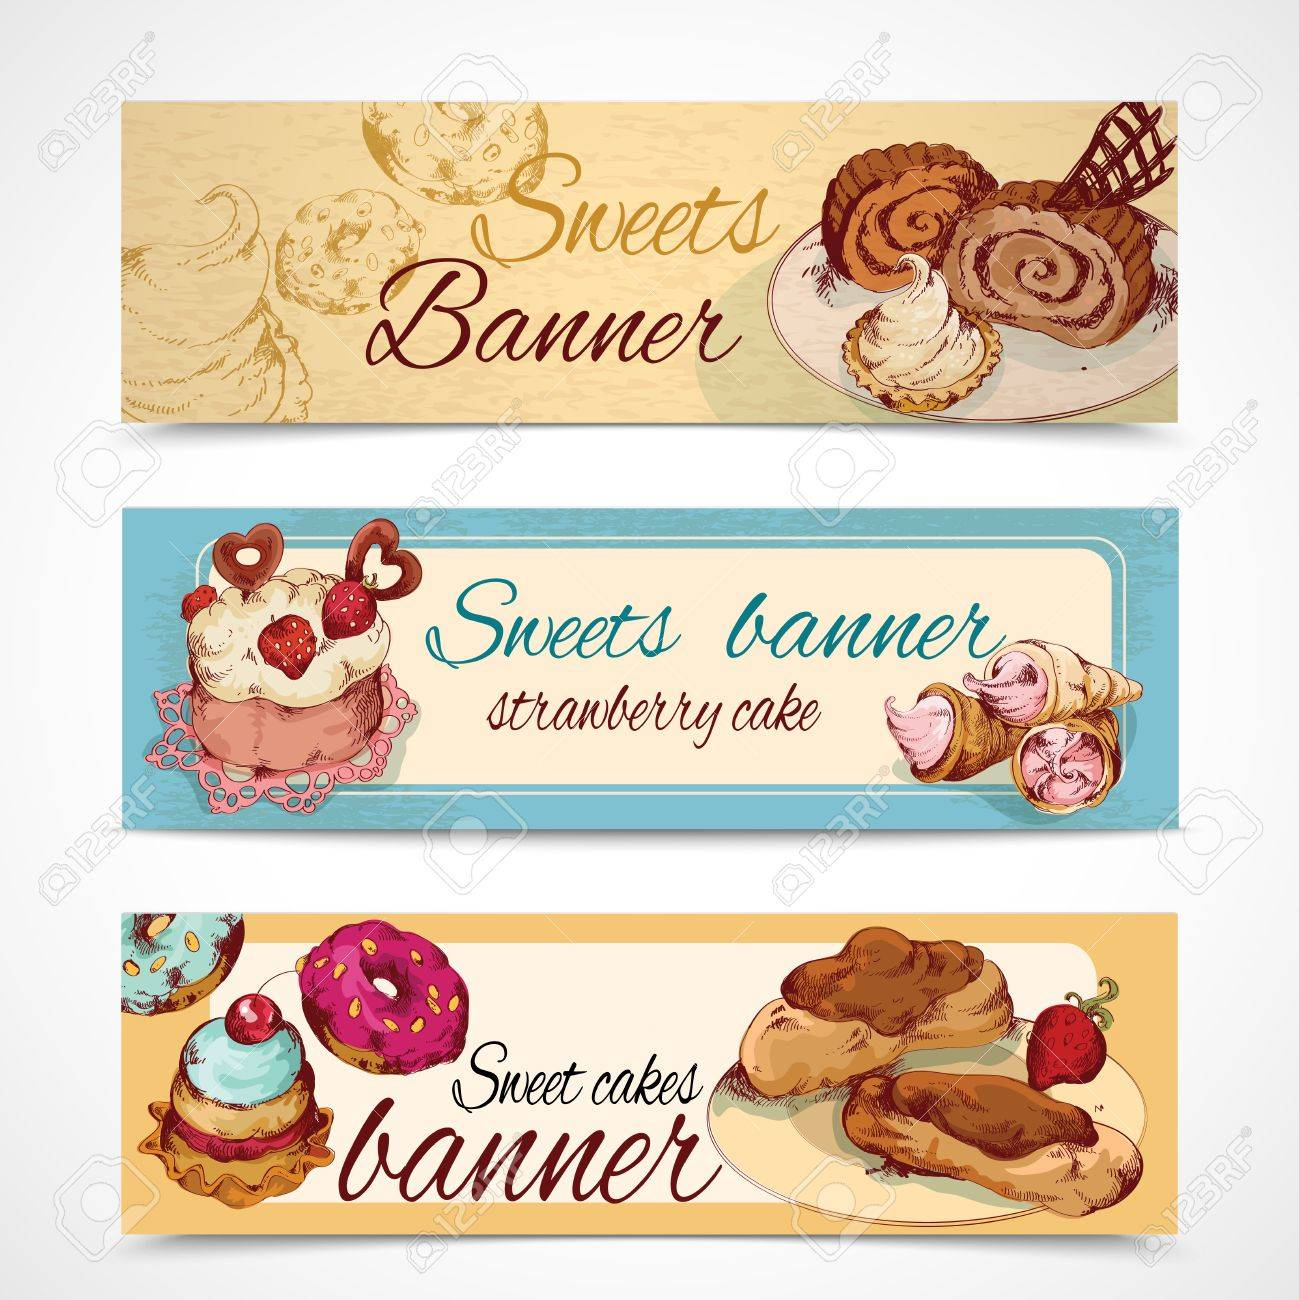 food sweets bakery and pastry sketch colored banners set isolated food sweets bakery and pastry sketch colored banners set isolated vector illustration stock vector 29817196